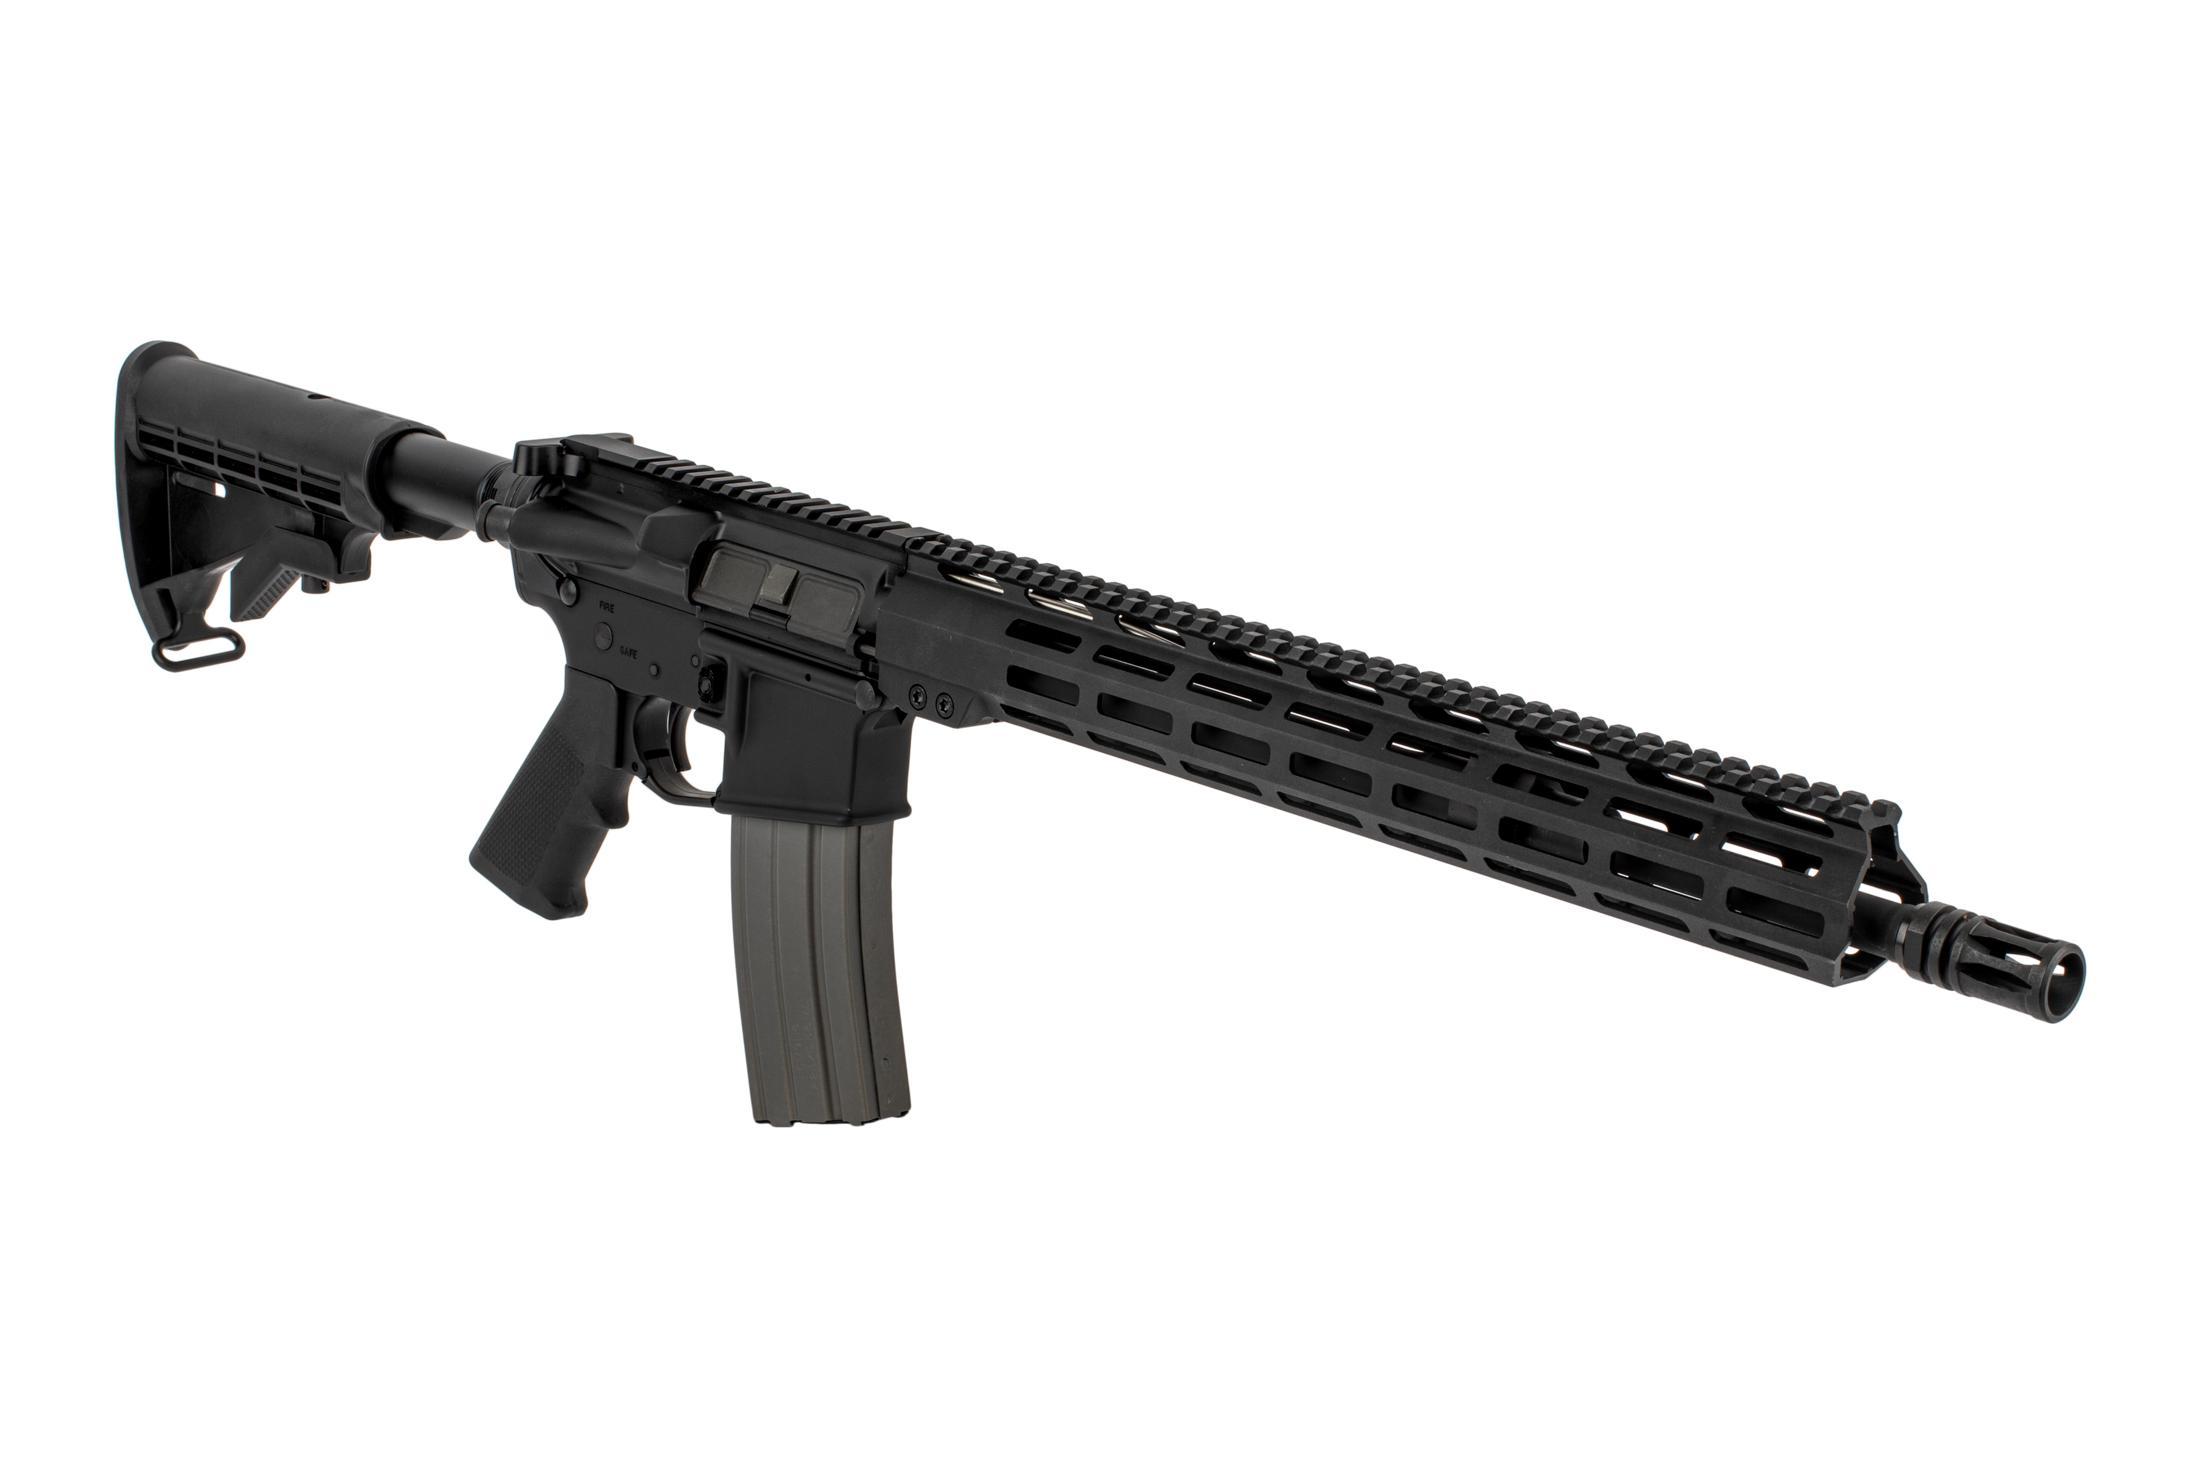 The DelTon AR15 Sierra 316L Rifle features a mid-length gas system and lightweight barrel profile